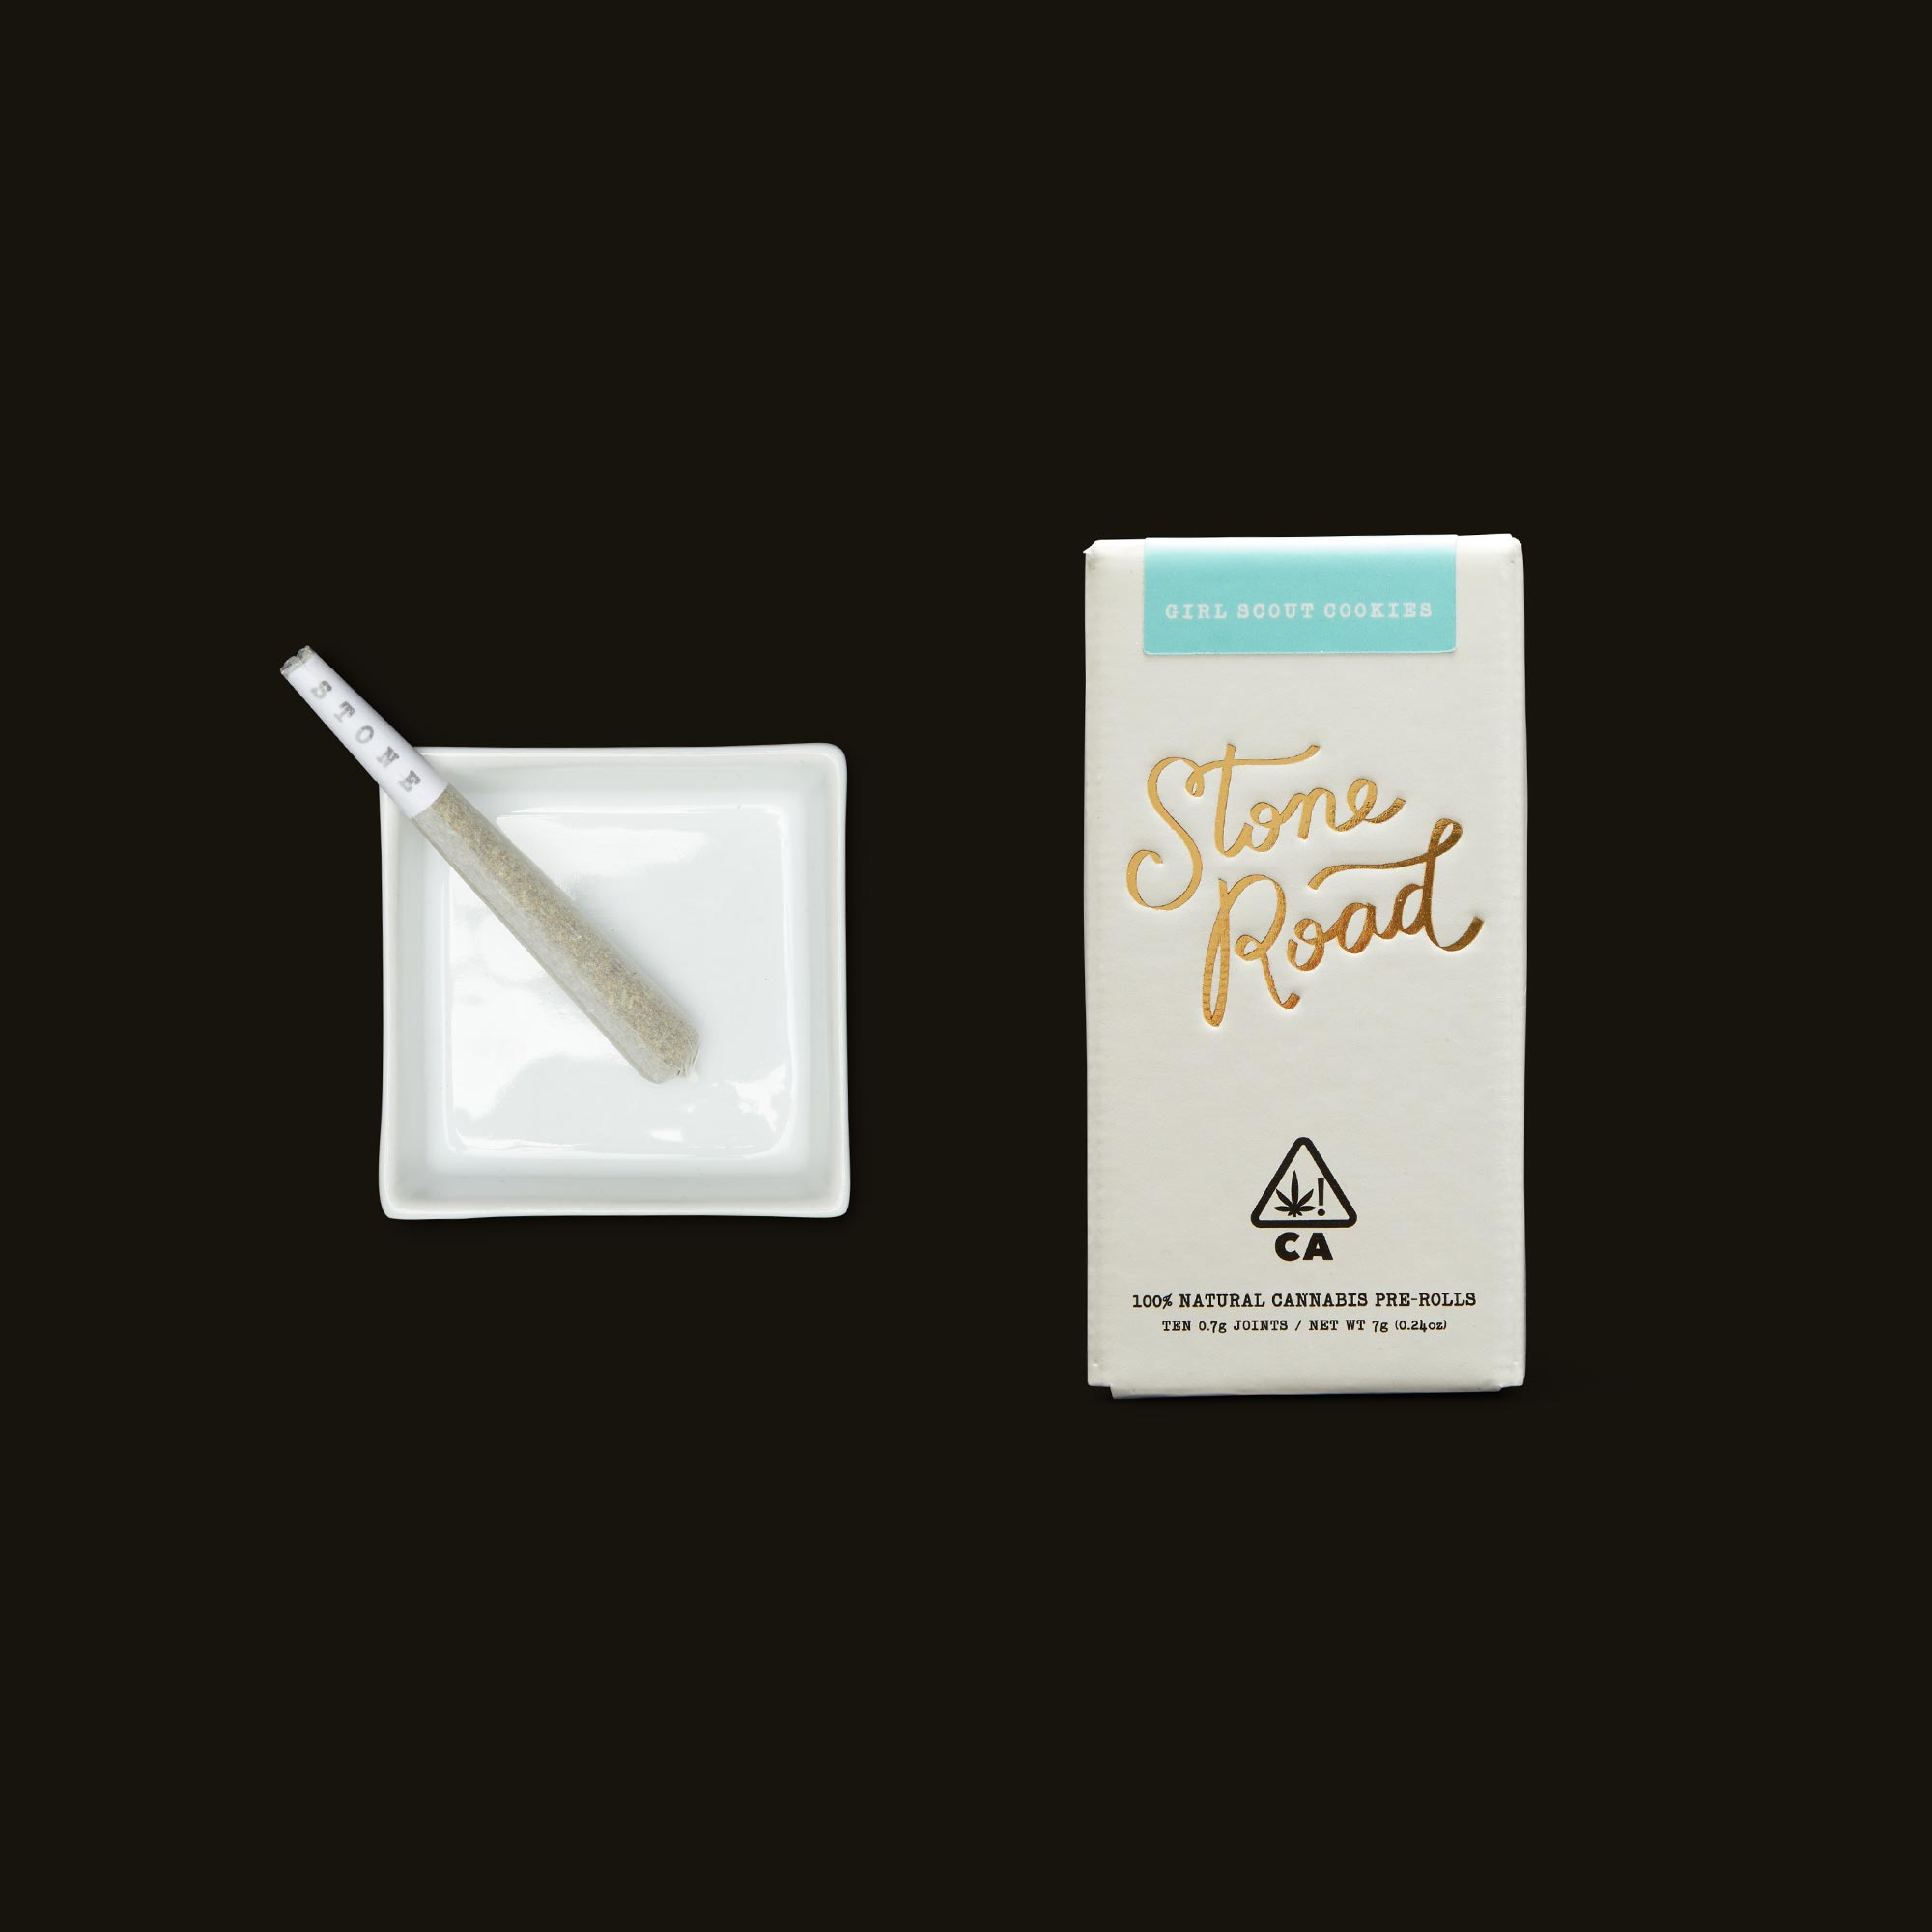 Stone Road Girl Scout Cookies Pre-Roll Pack